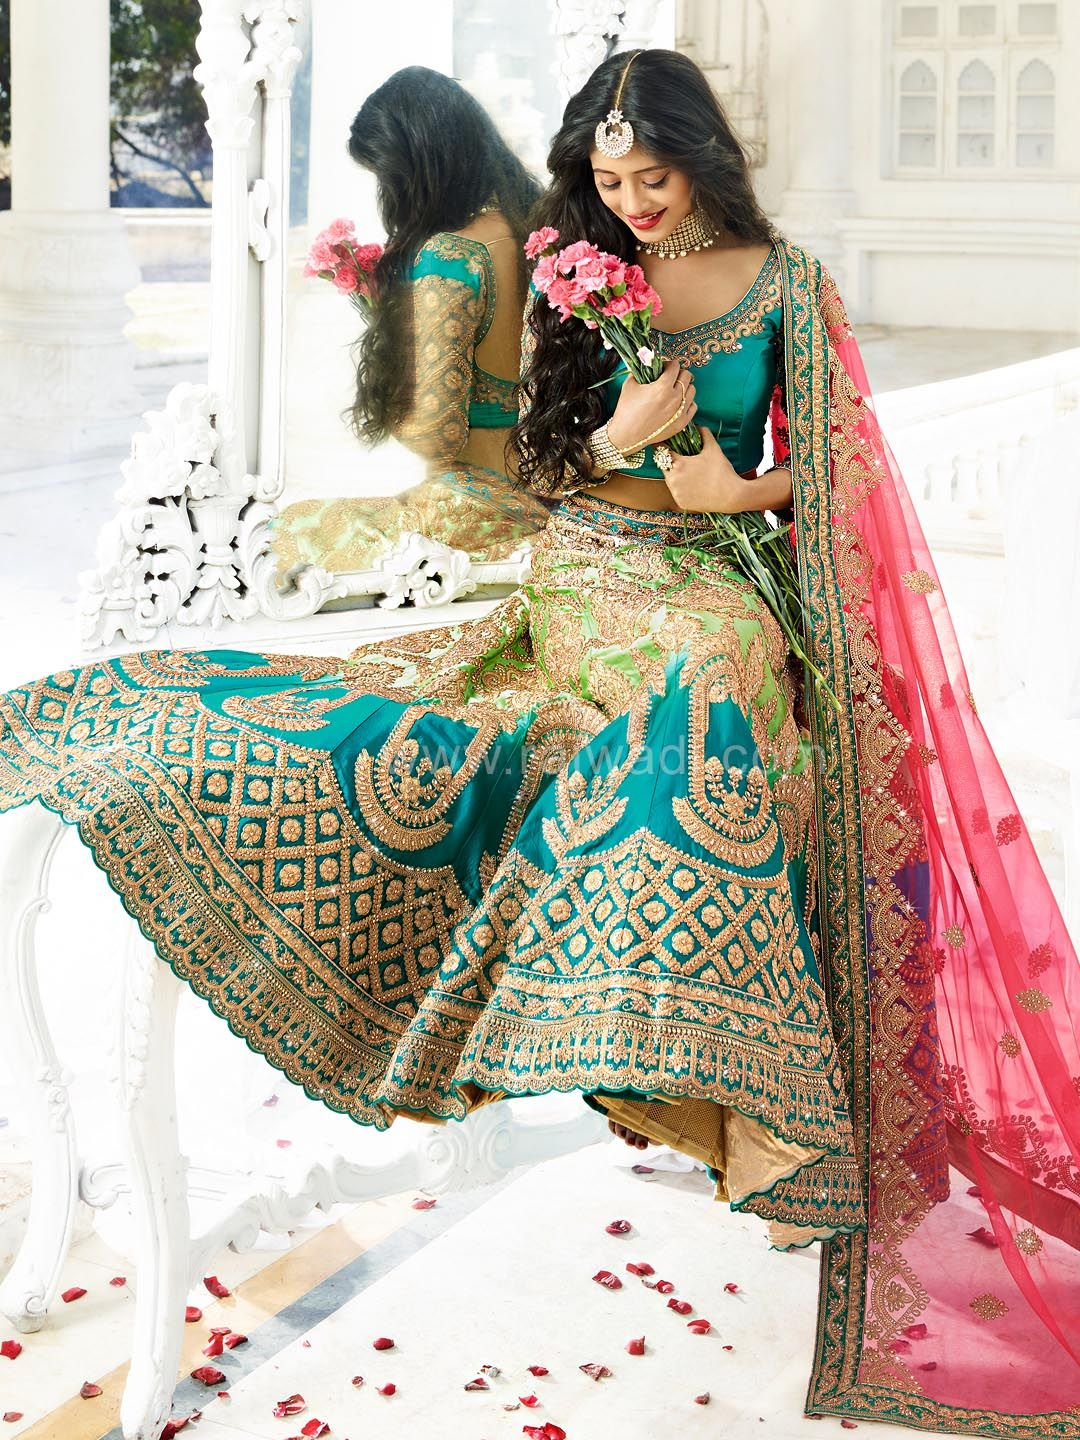 eb6284cc9d Lawn Green and Blue Colored Shivangi Joshi Lehenga Choli Indian Gowns,  Indian Suits, Indian